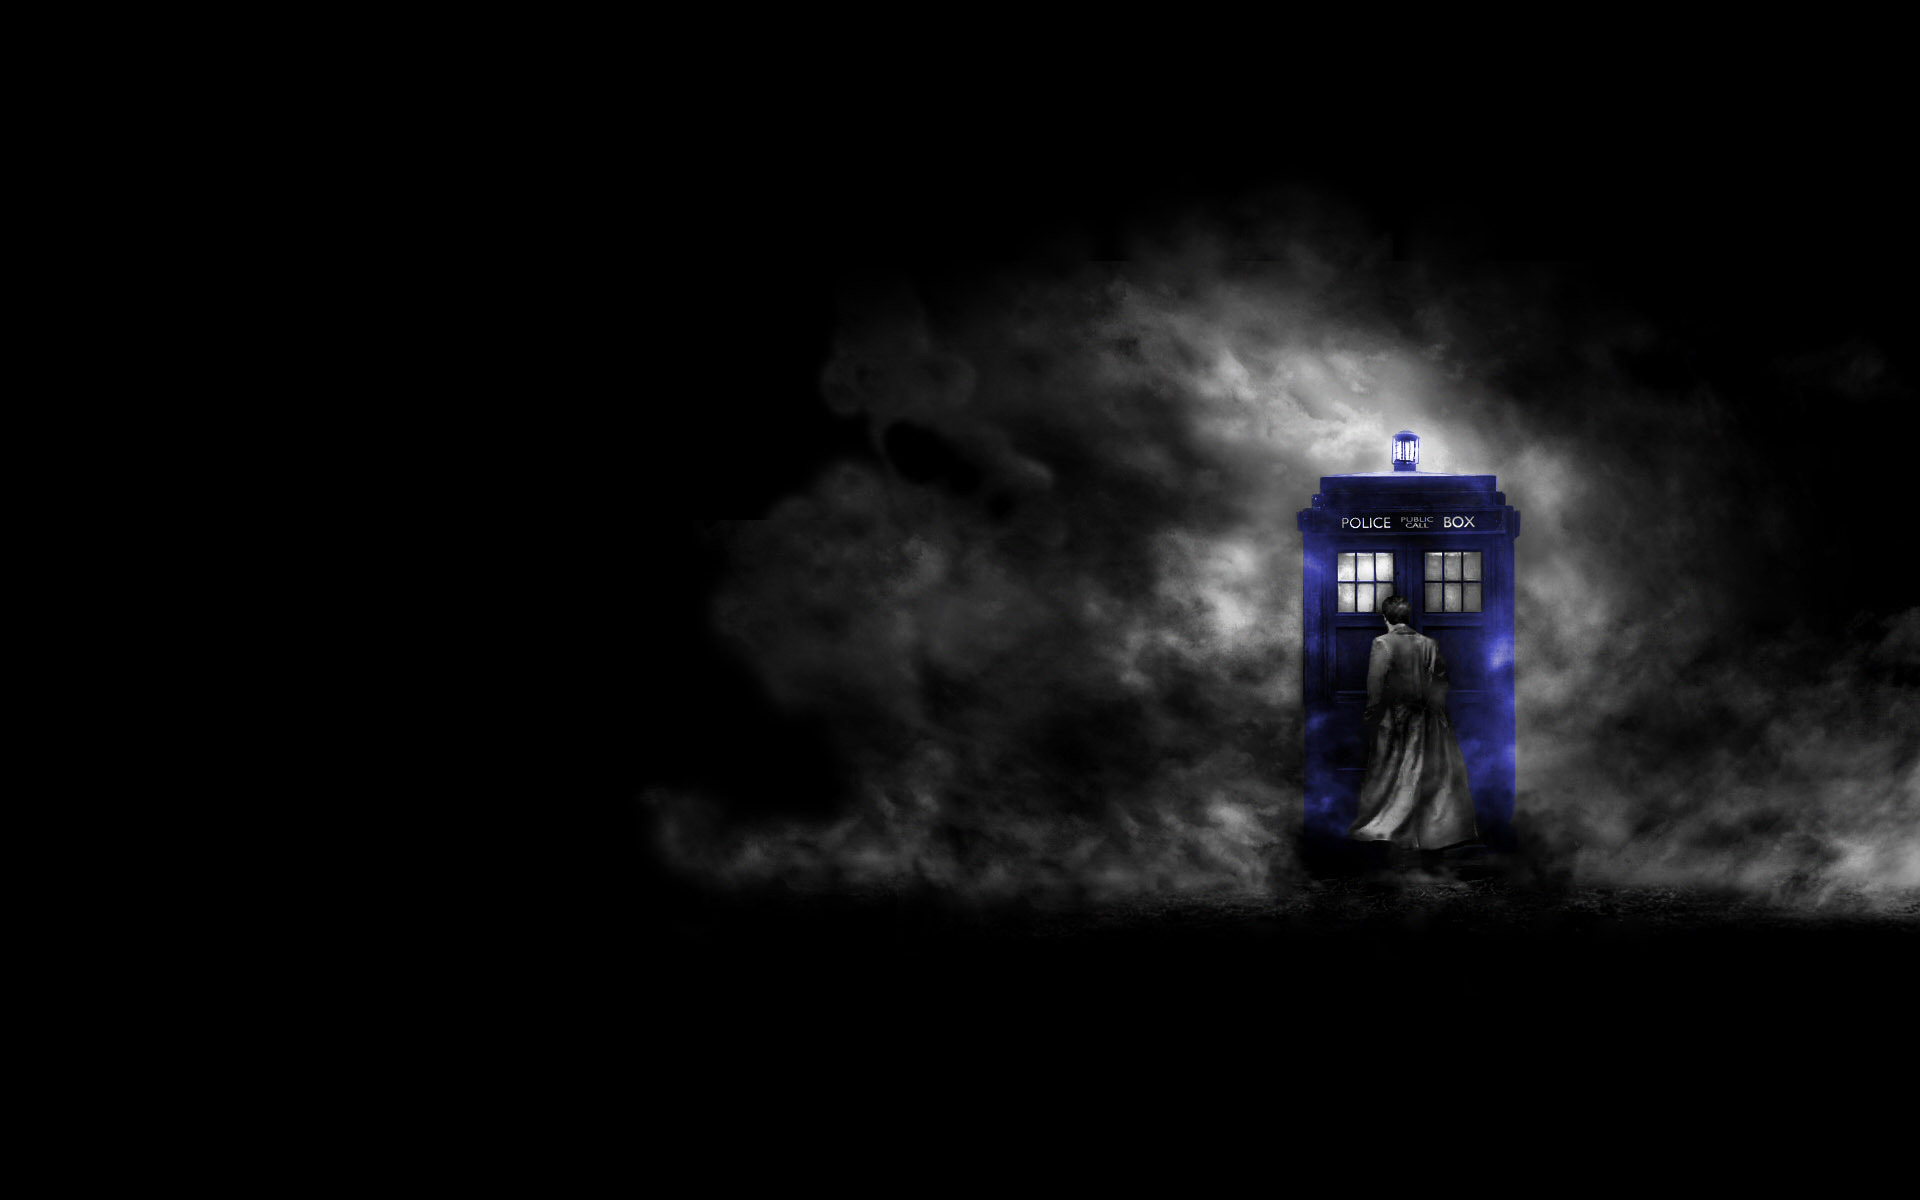 Doctor Who Quotes Iphone Wallpaper Free Download Doctor Who Wallpapers Pixelstalk Net